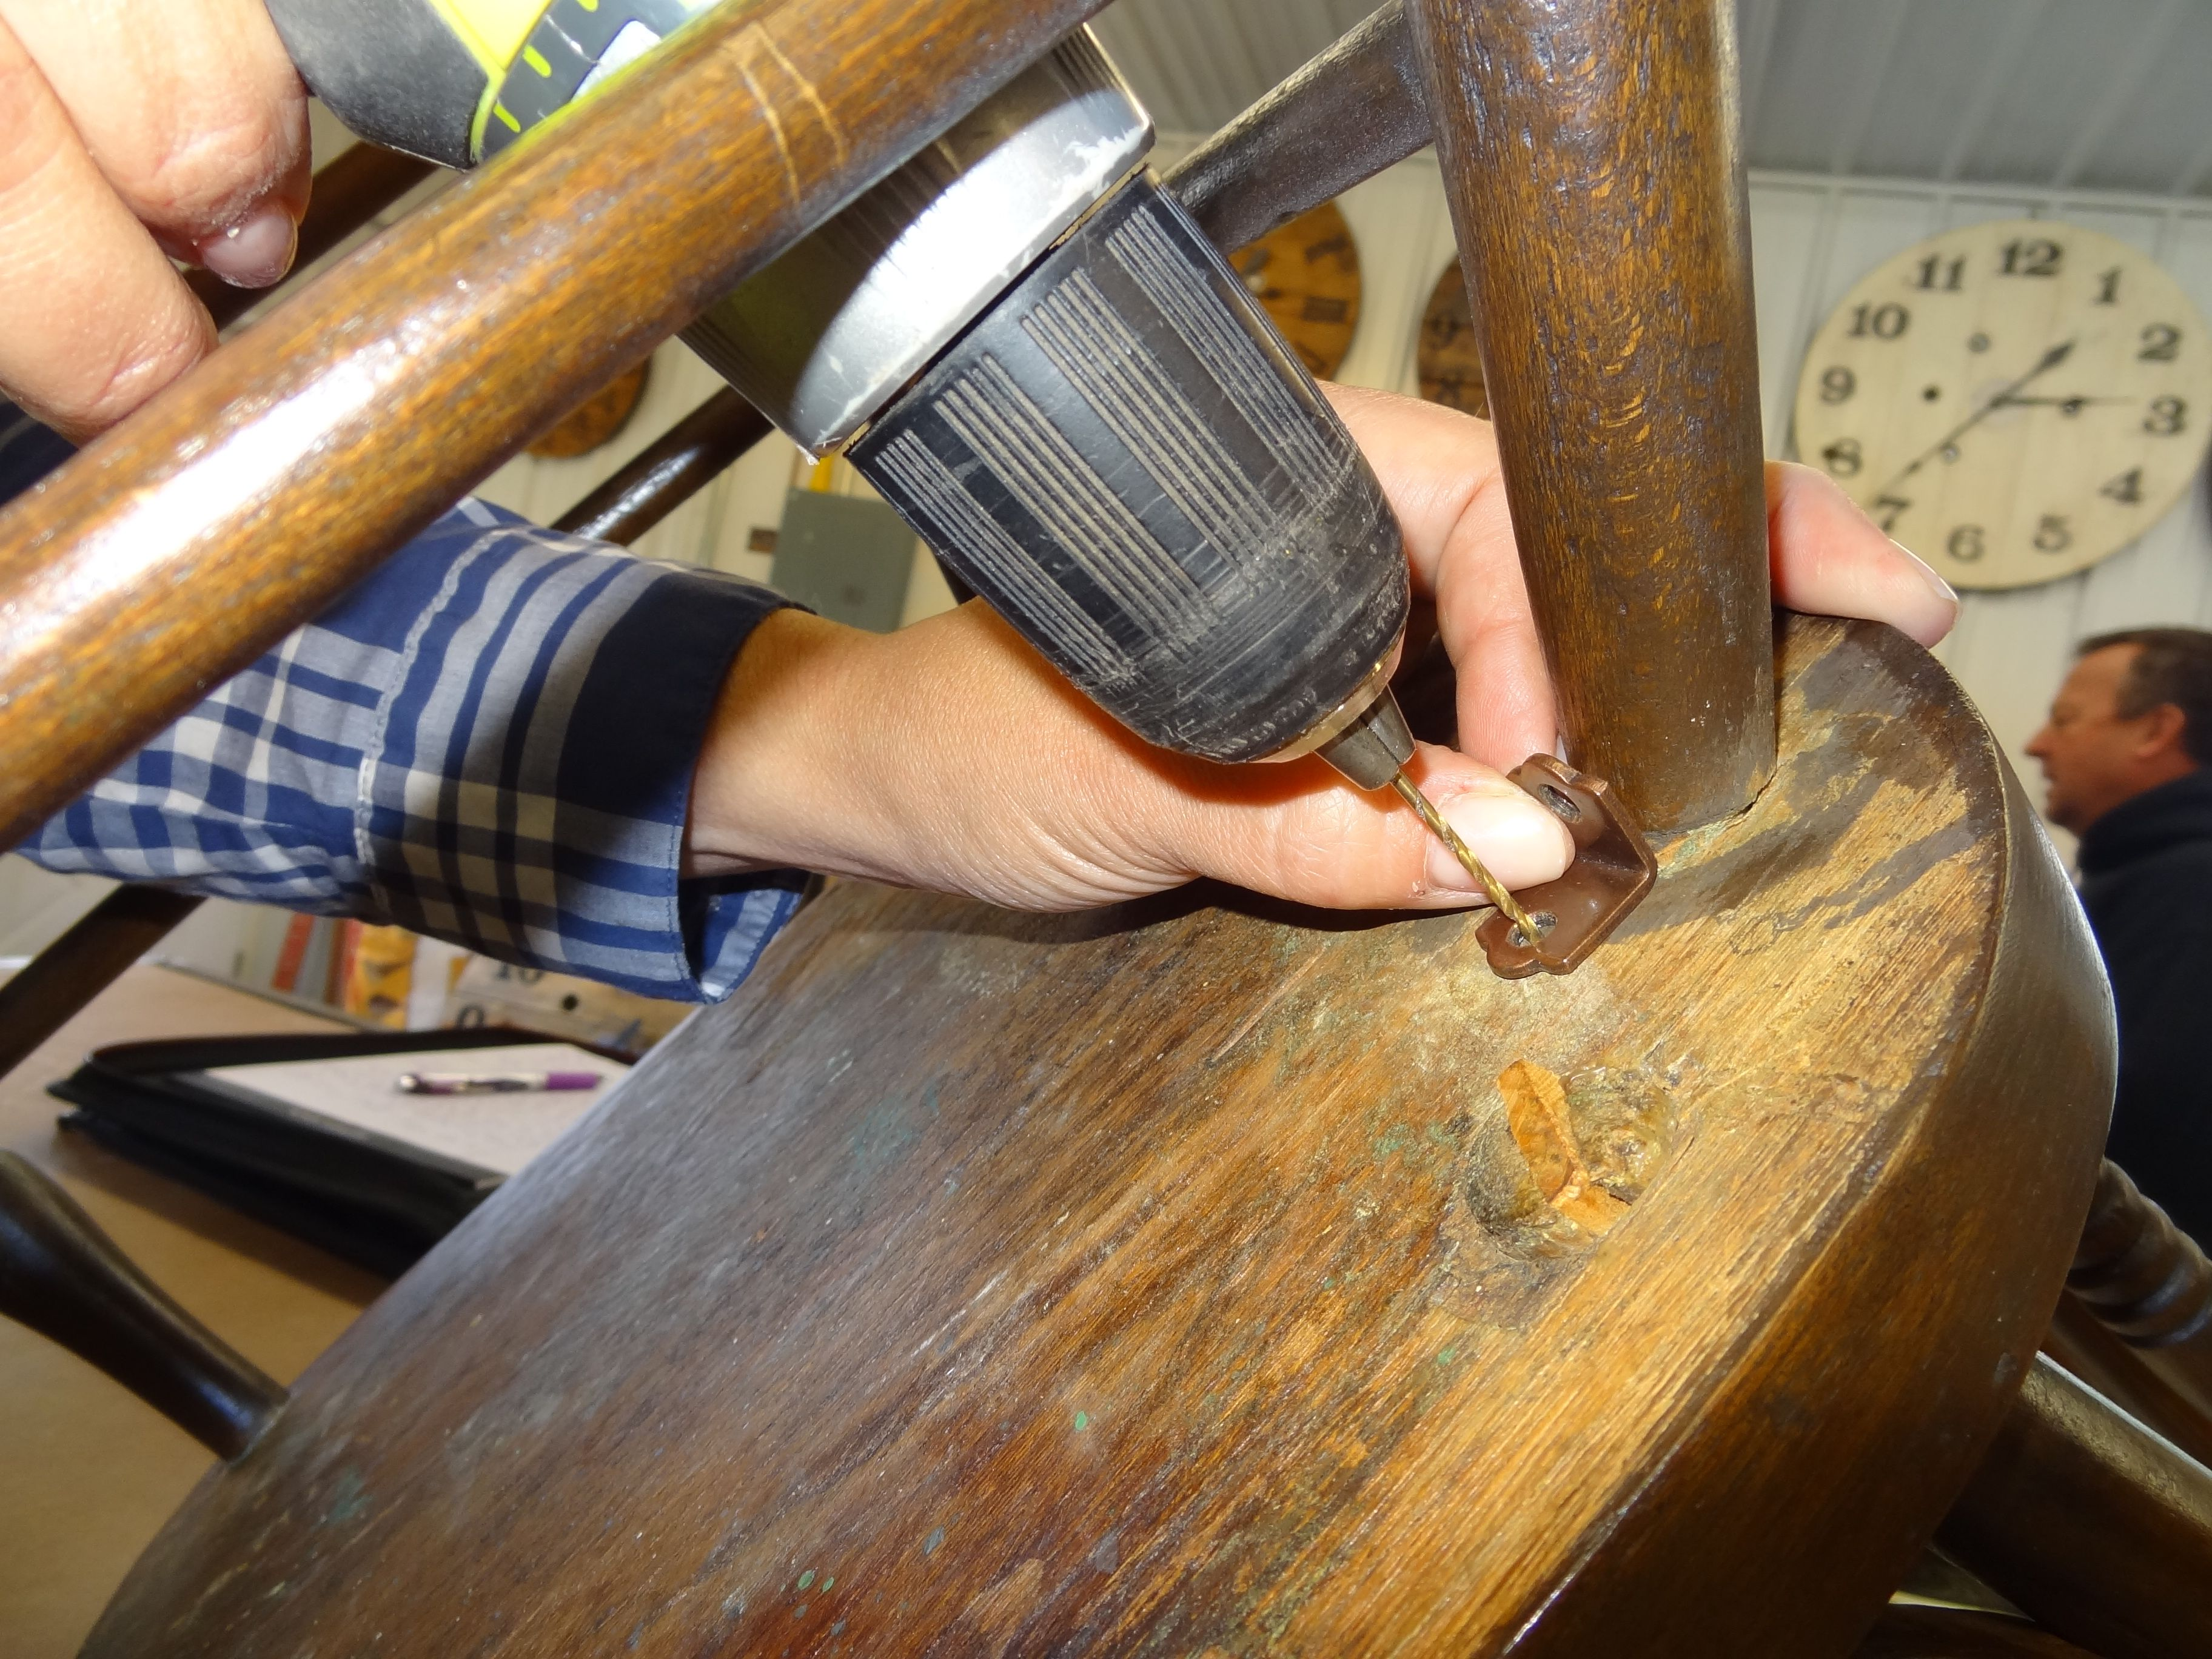 10 Furniture Problems You Can Fix Yourself